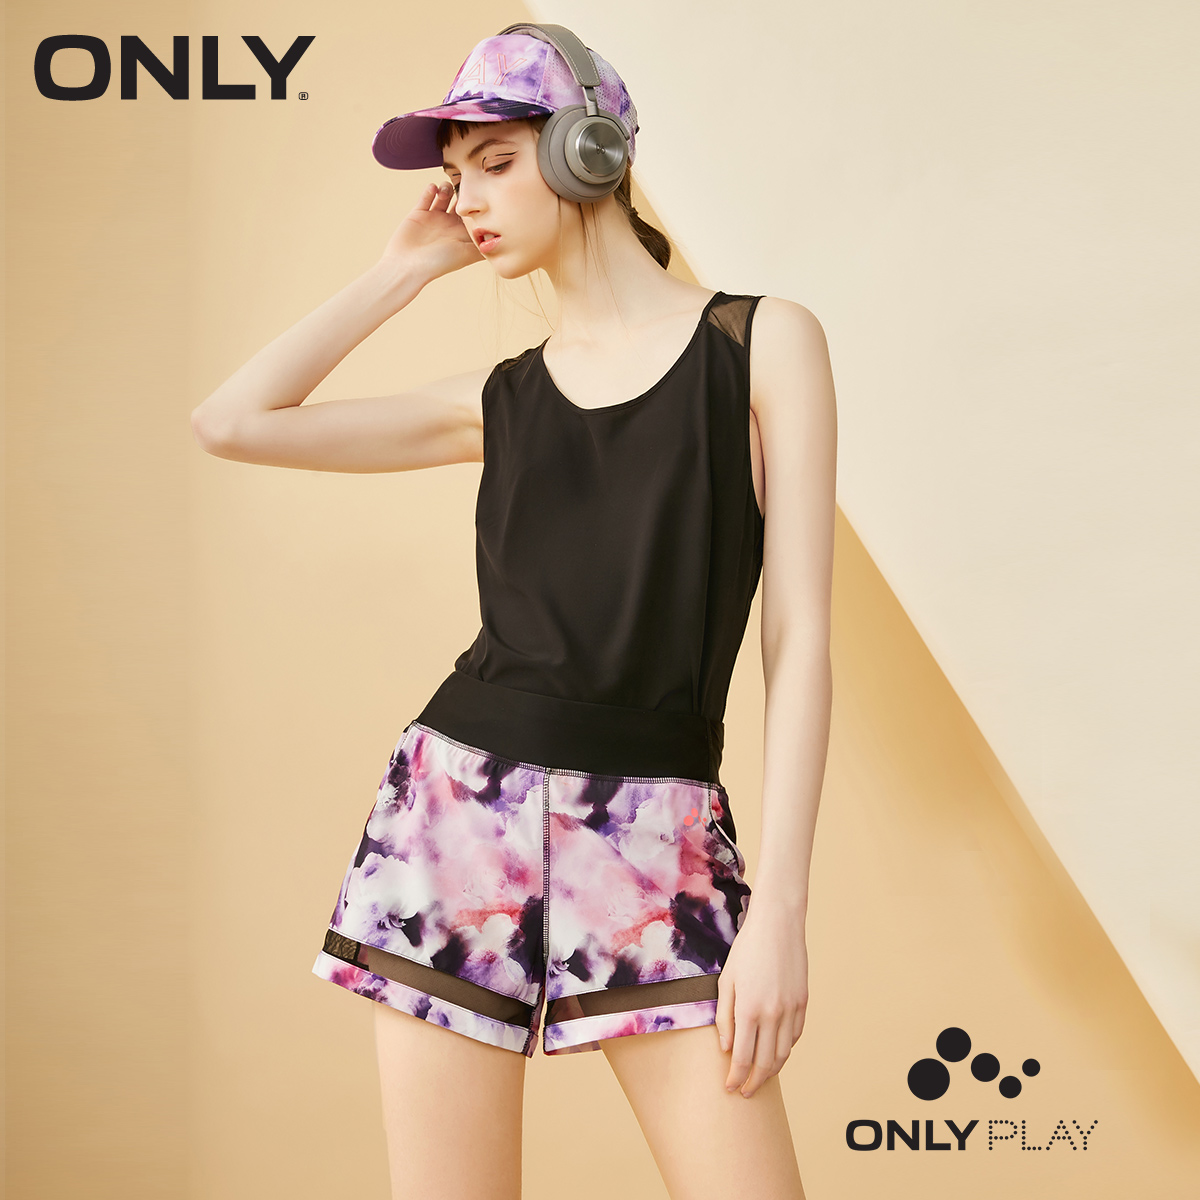 ONLY PLAY Moisture-wicking Gauzy   Shorts   |118215504